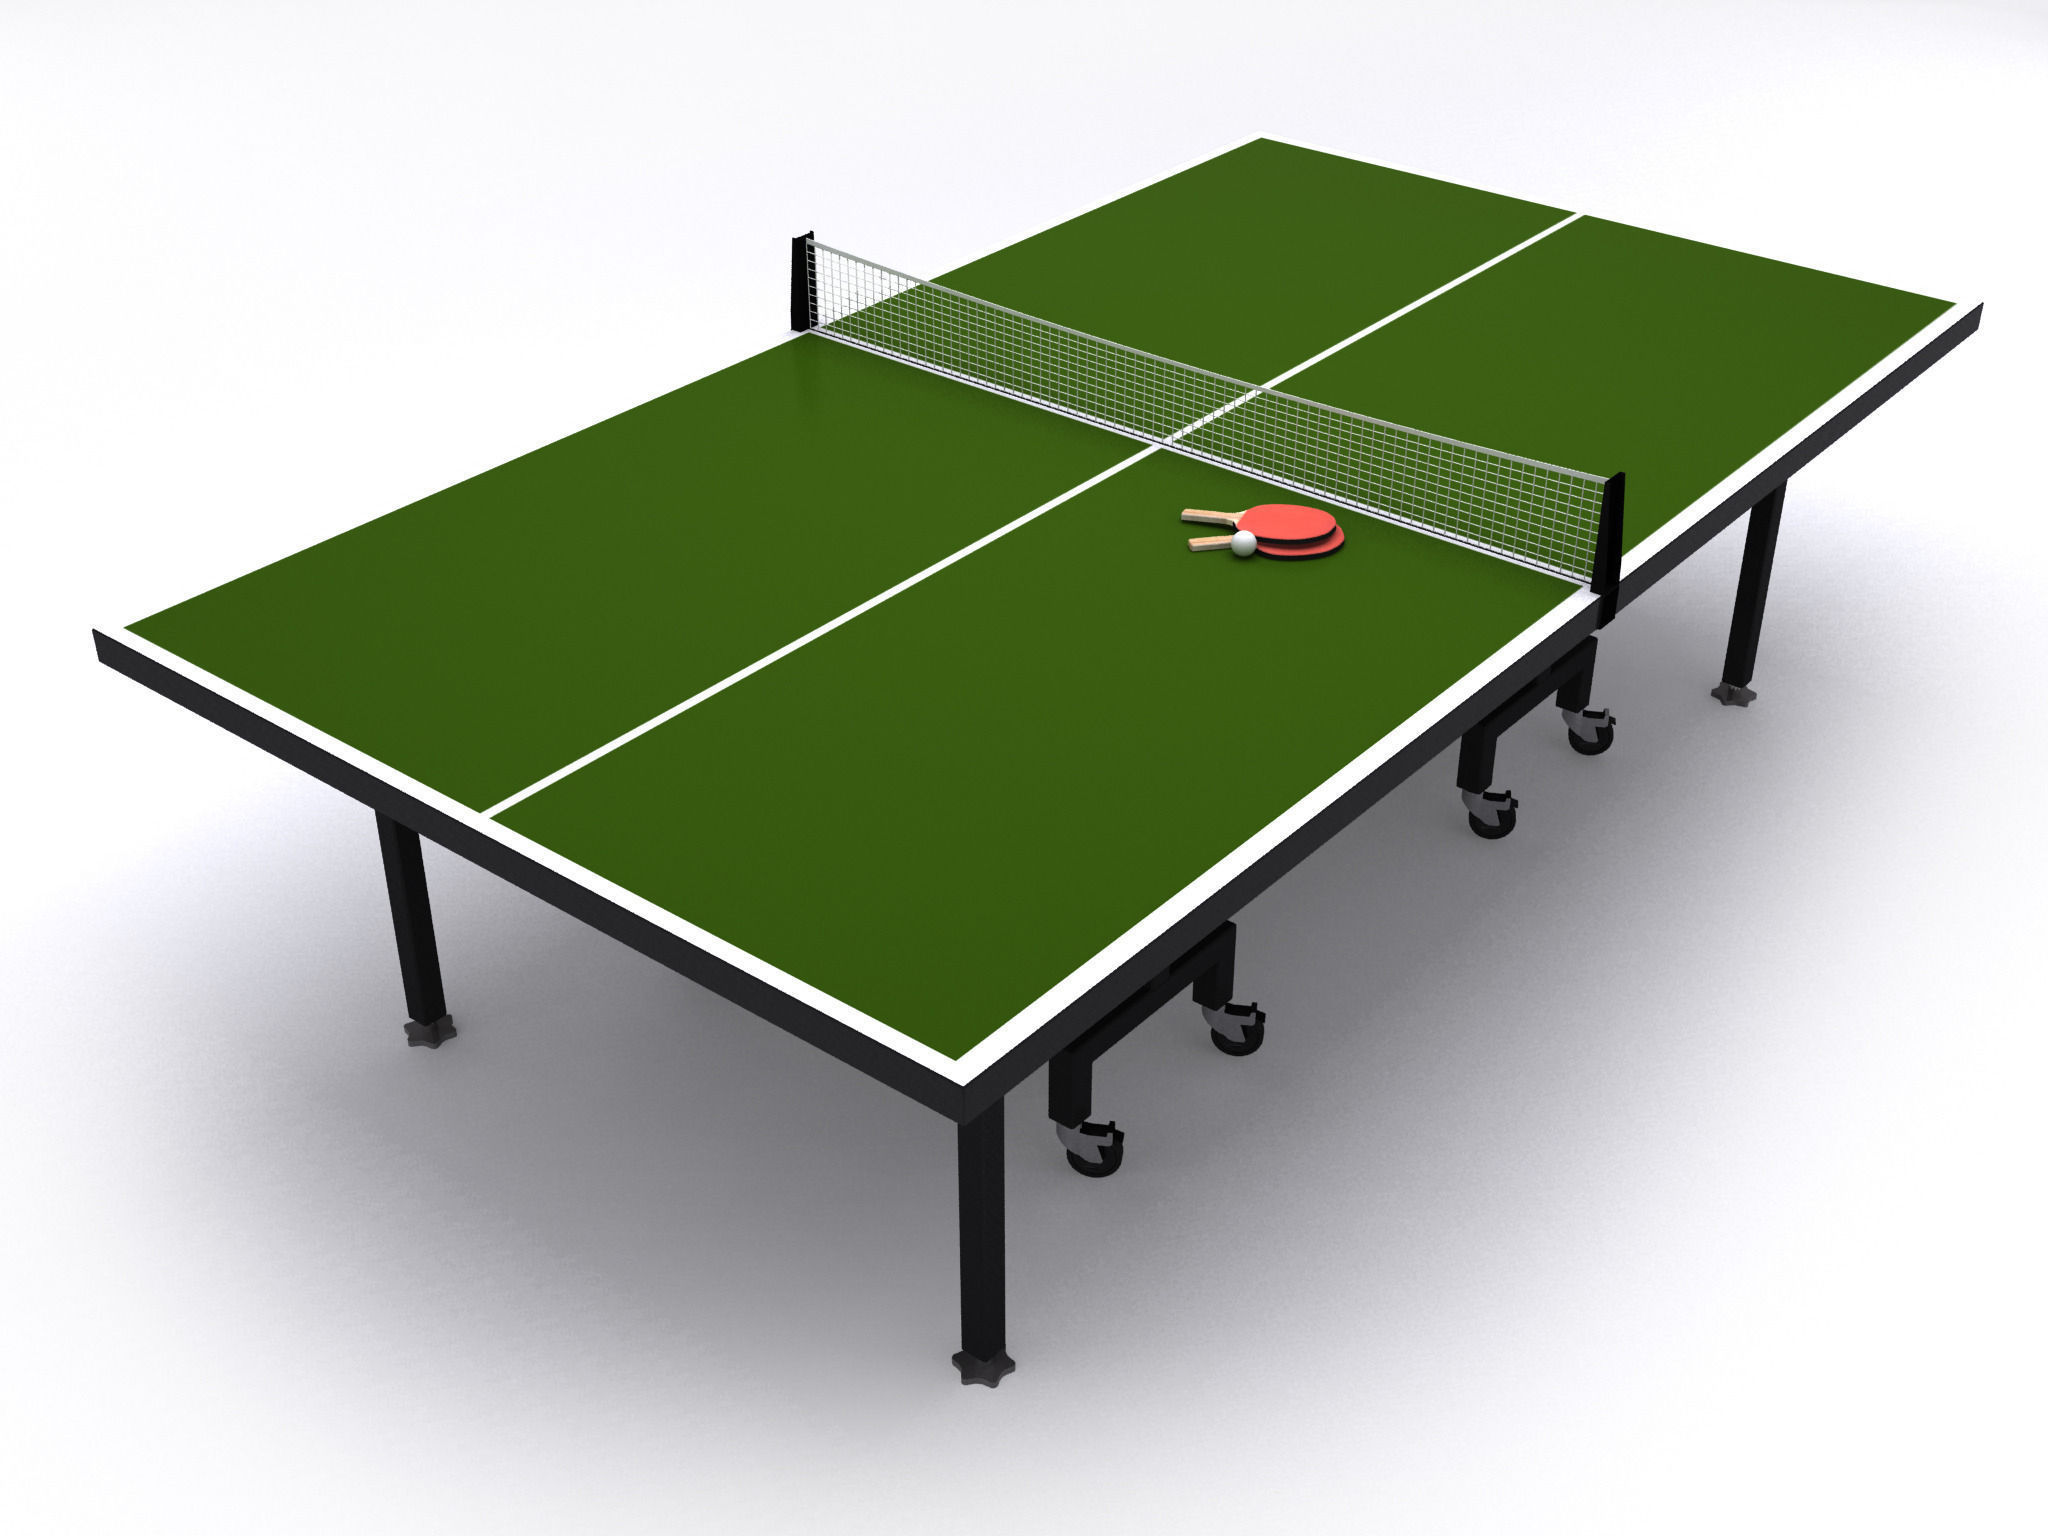 Merveilleux ... Table Tennis Or Ping Pong Table 3d Model Max Obj 3ds Fbx Mtl Mat 2 ...